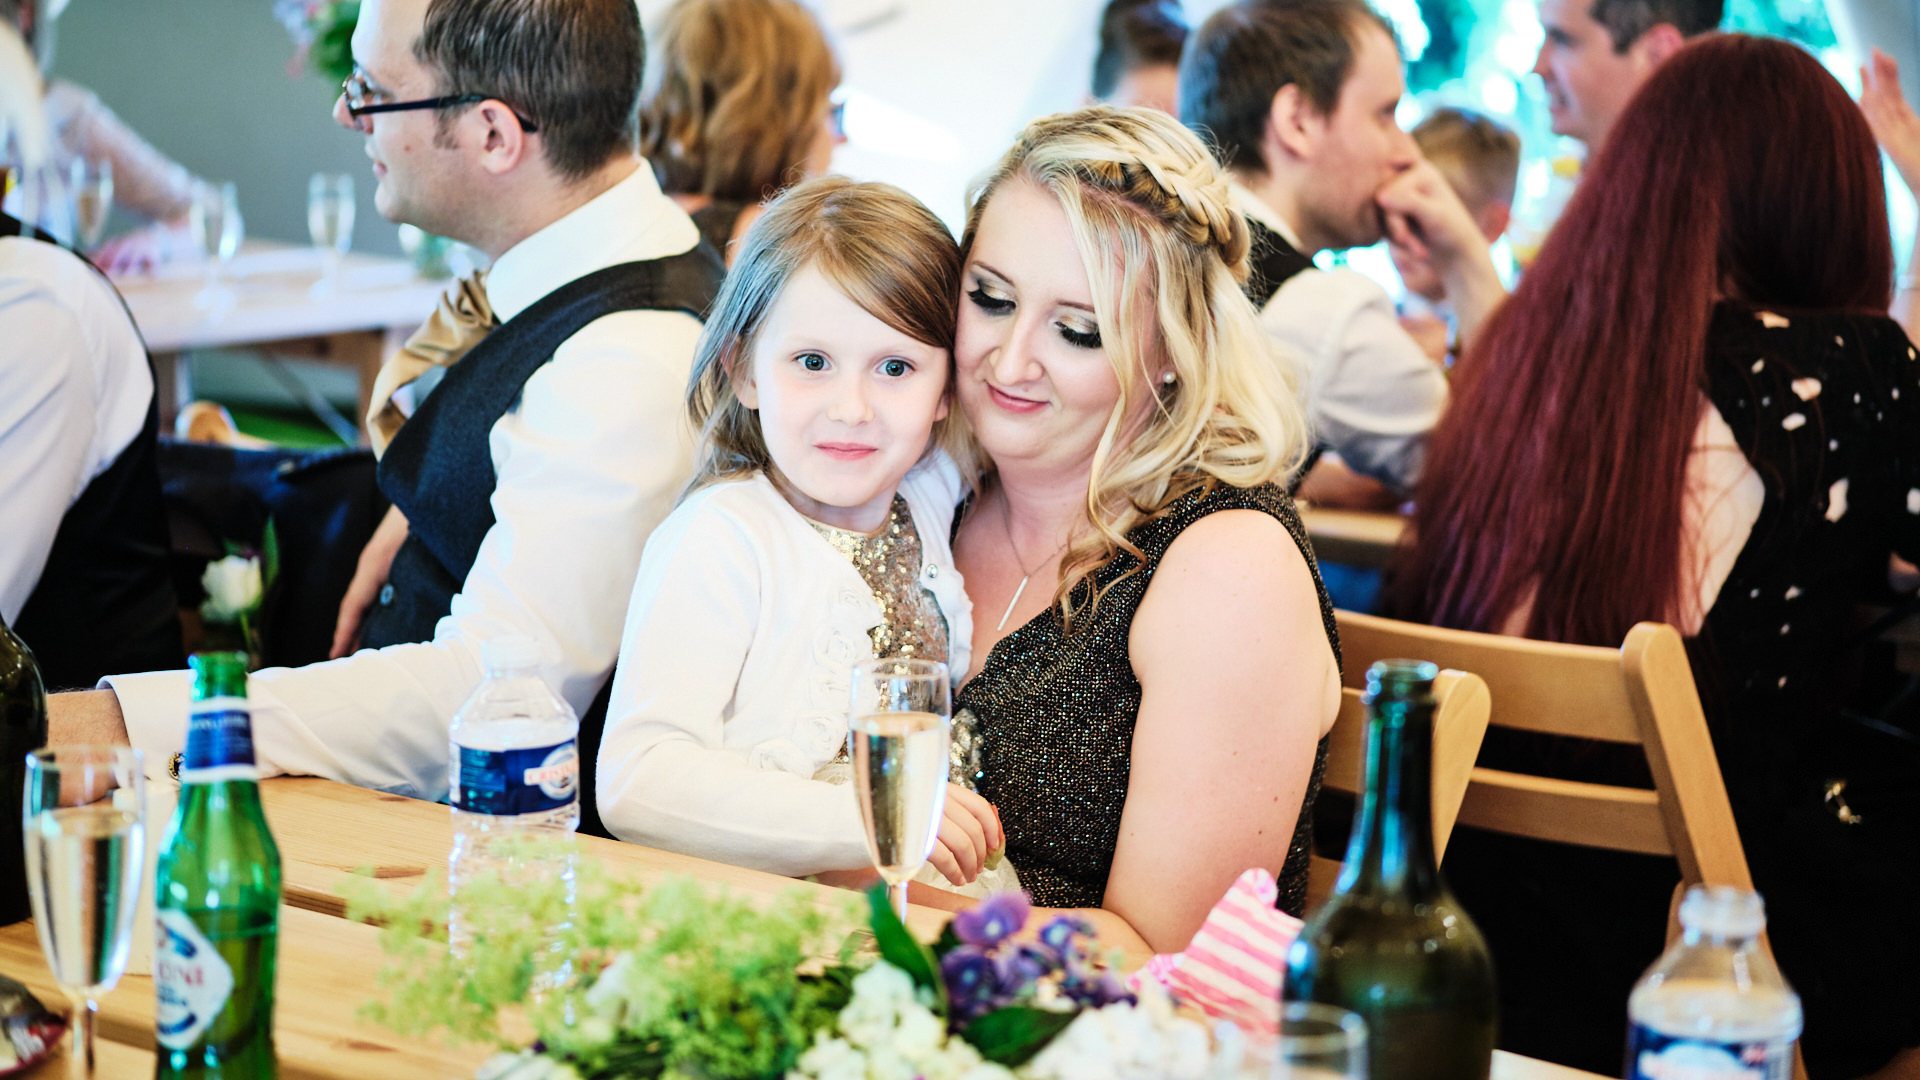 colour photograph of a bridesmaid and her daughter smiling during the wedding reception